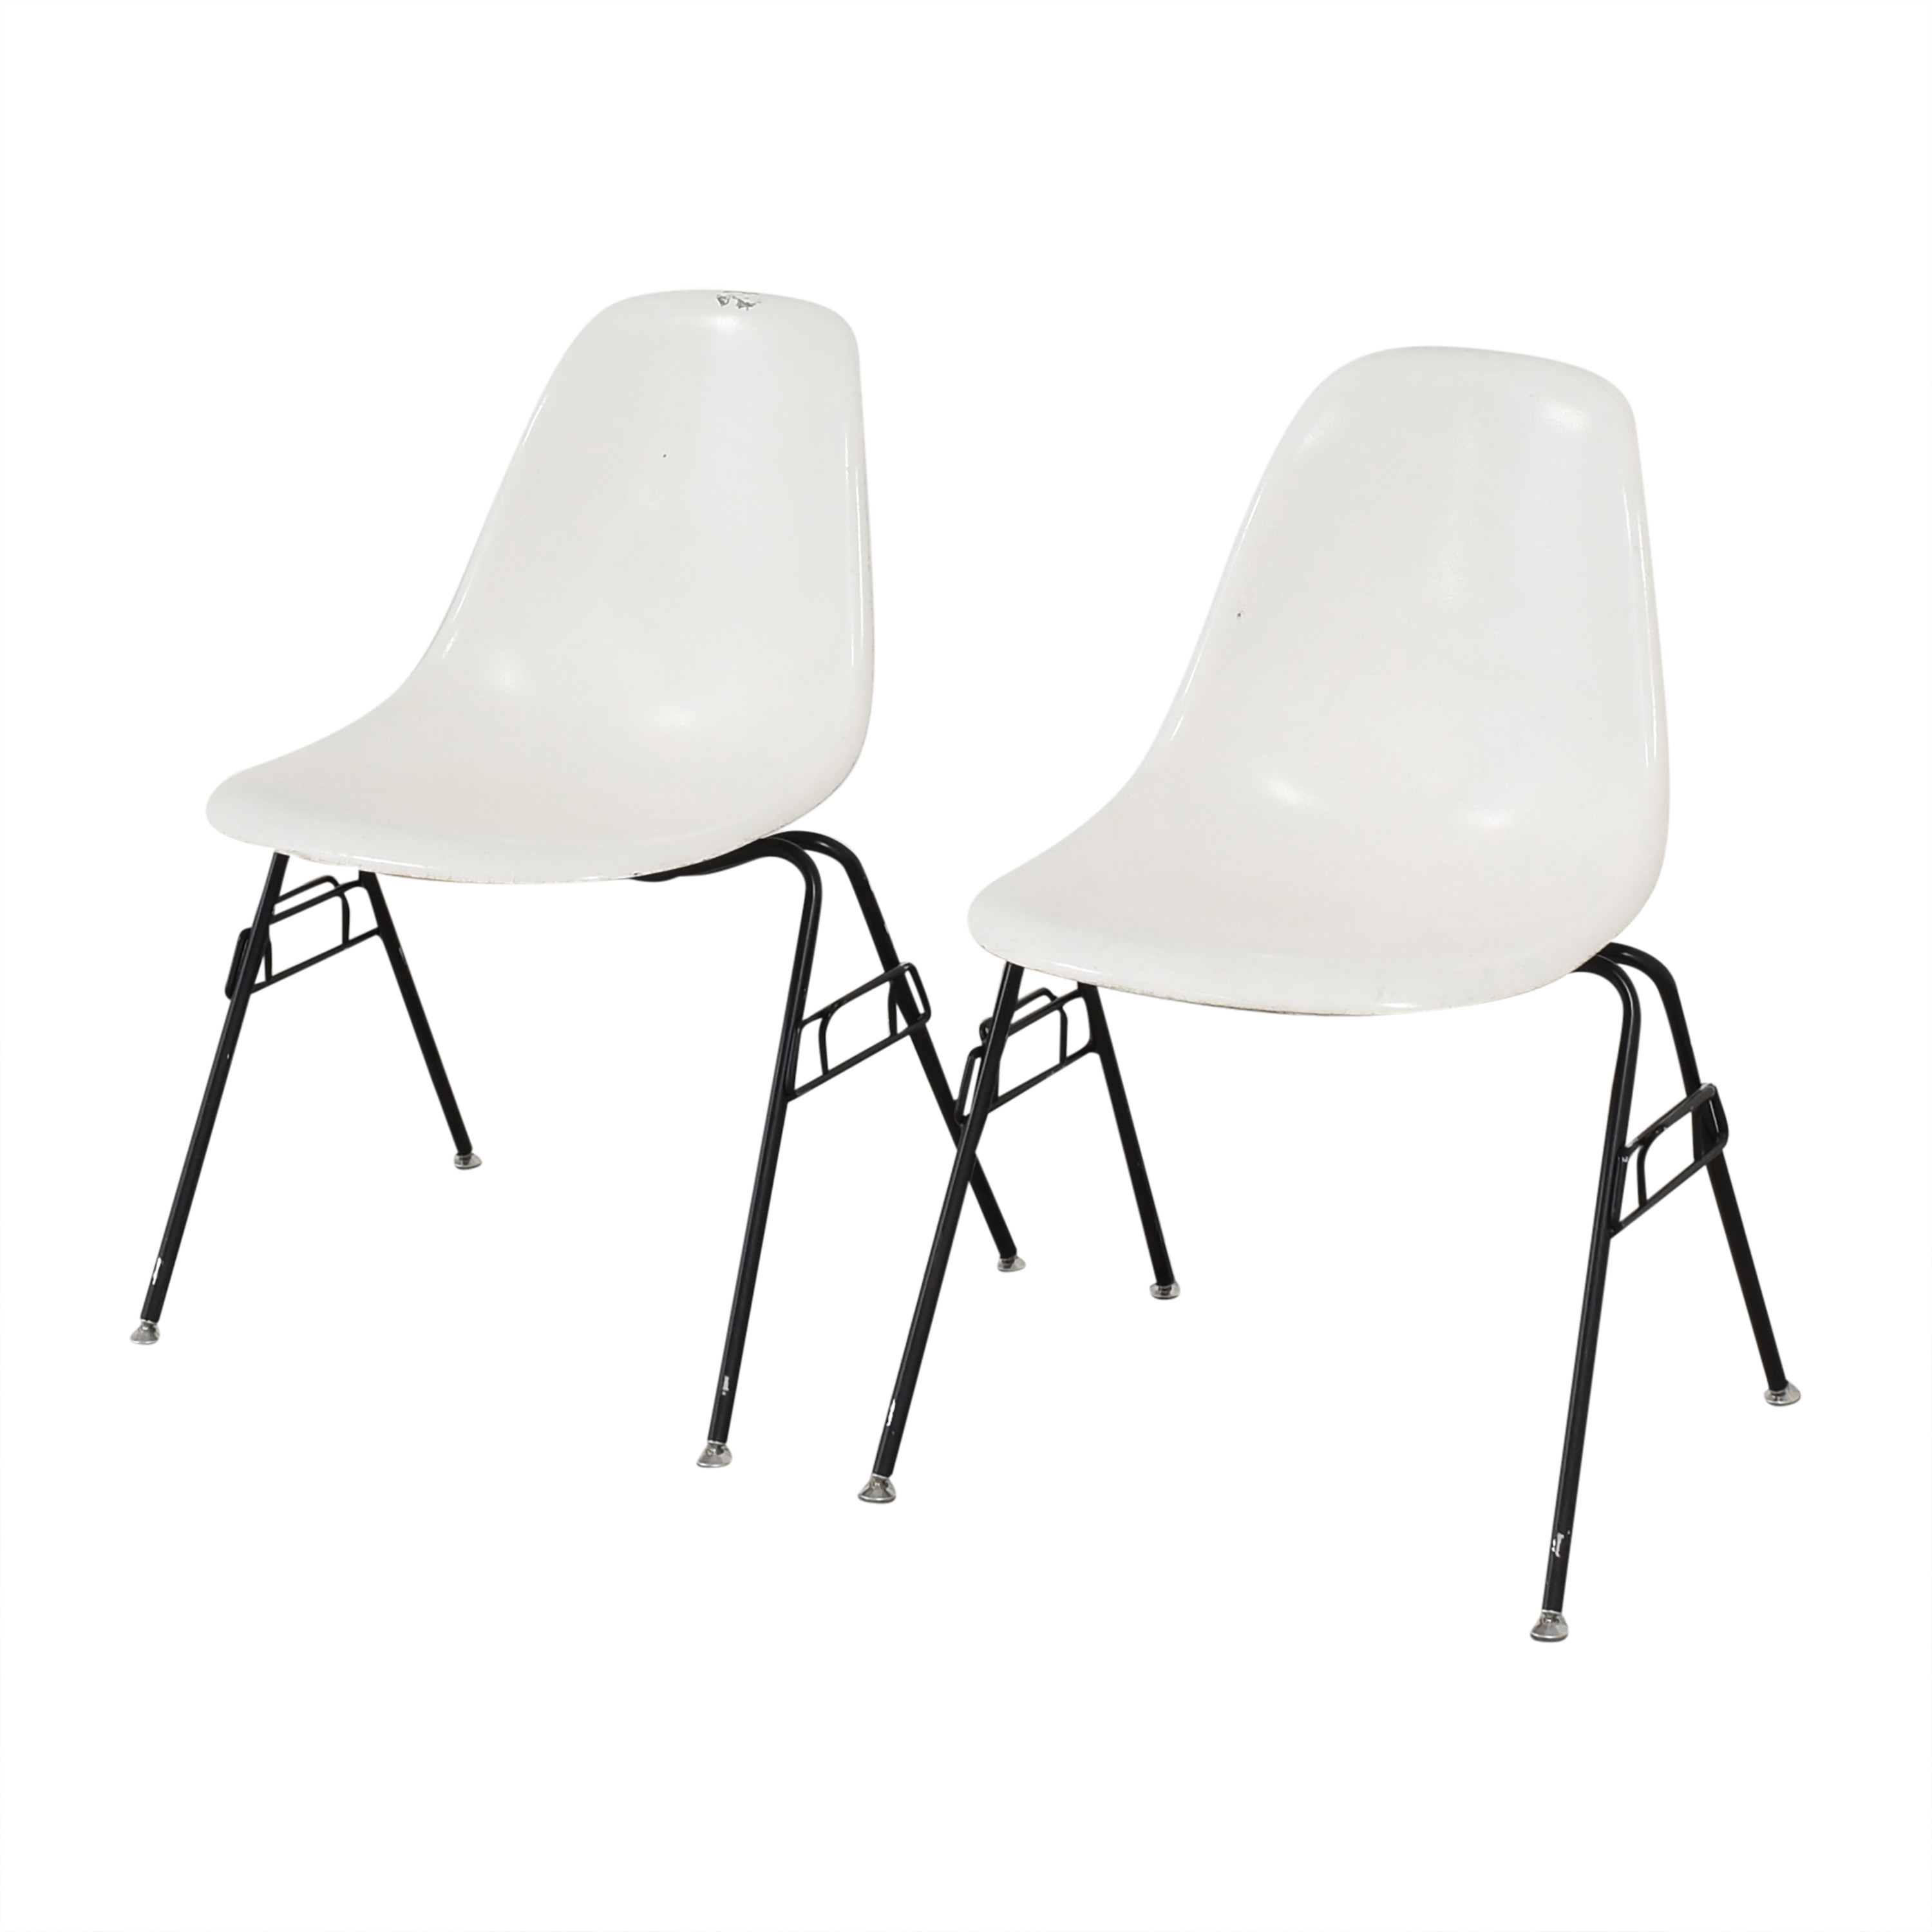 Modernica Case Study Furniture Side Shell Stacking Chairs / Dining Chairs